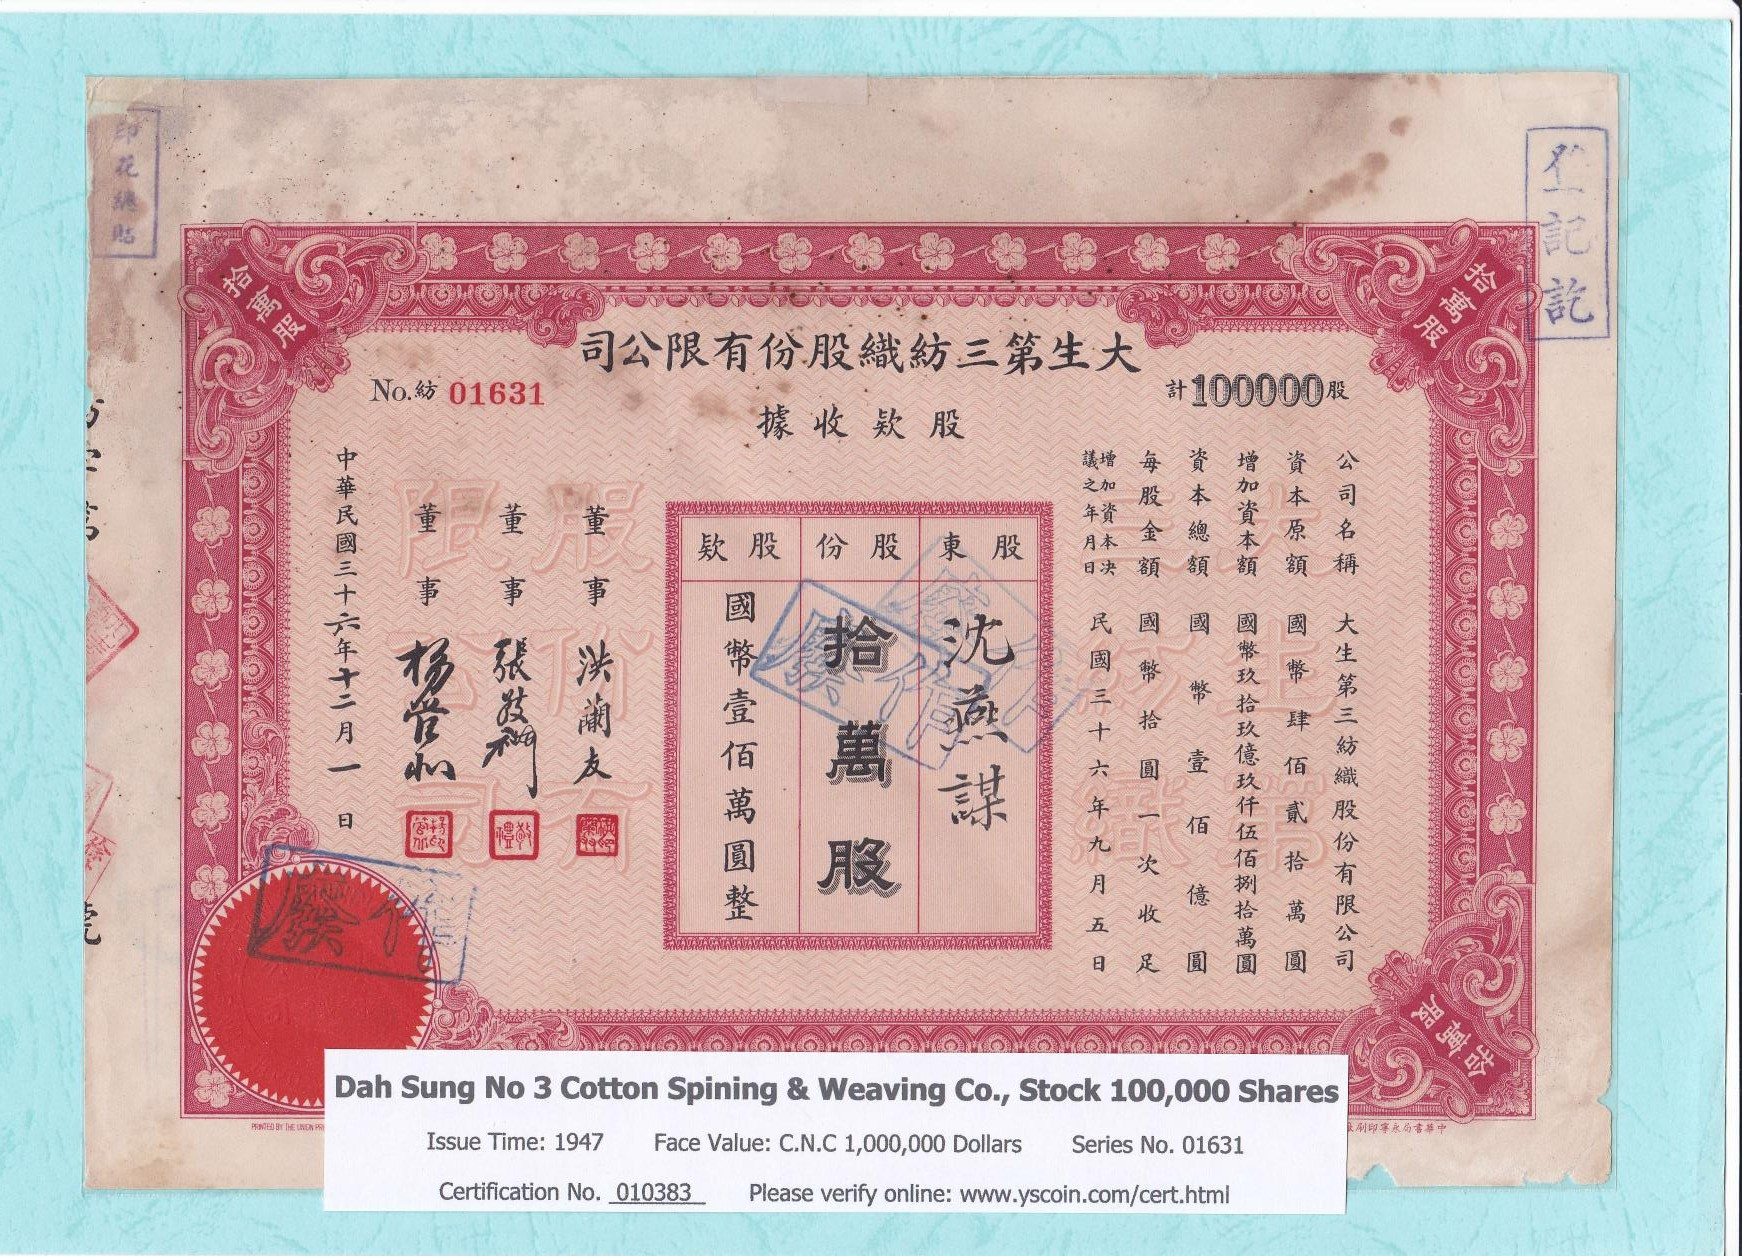 010383, Dah Sung No 3 Cotton Spining & Weaving Co., Stock 100,000 Shares